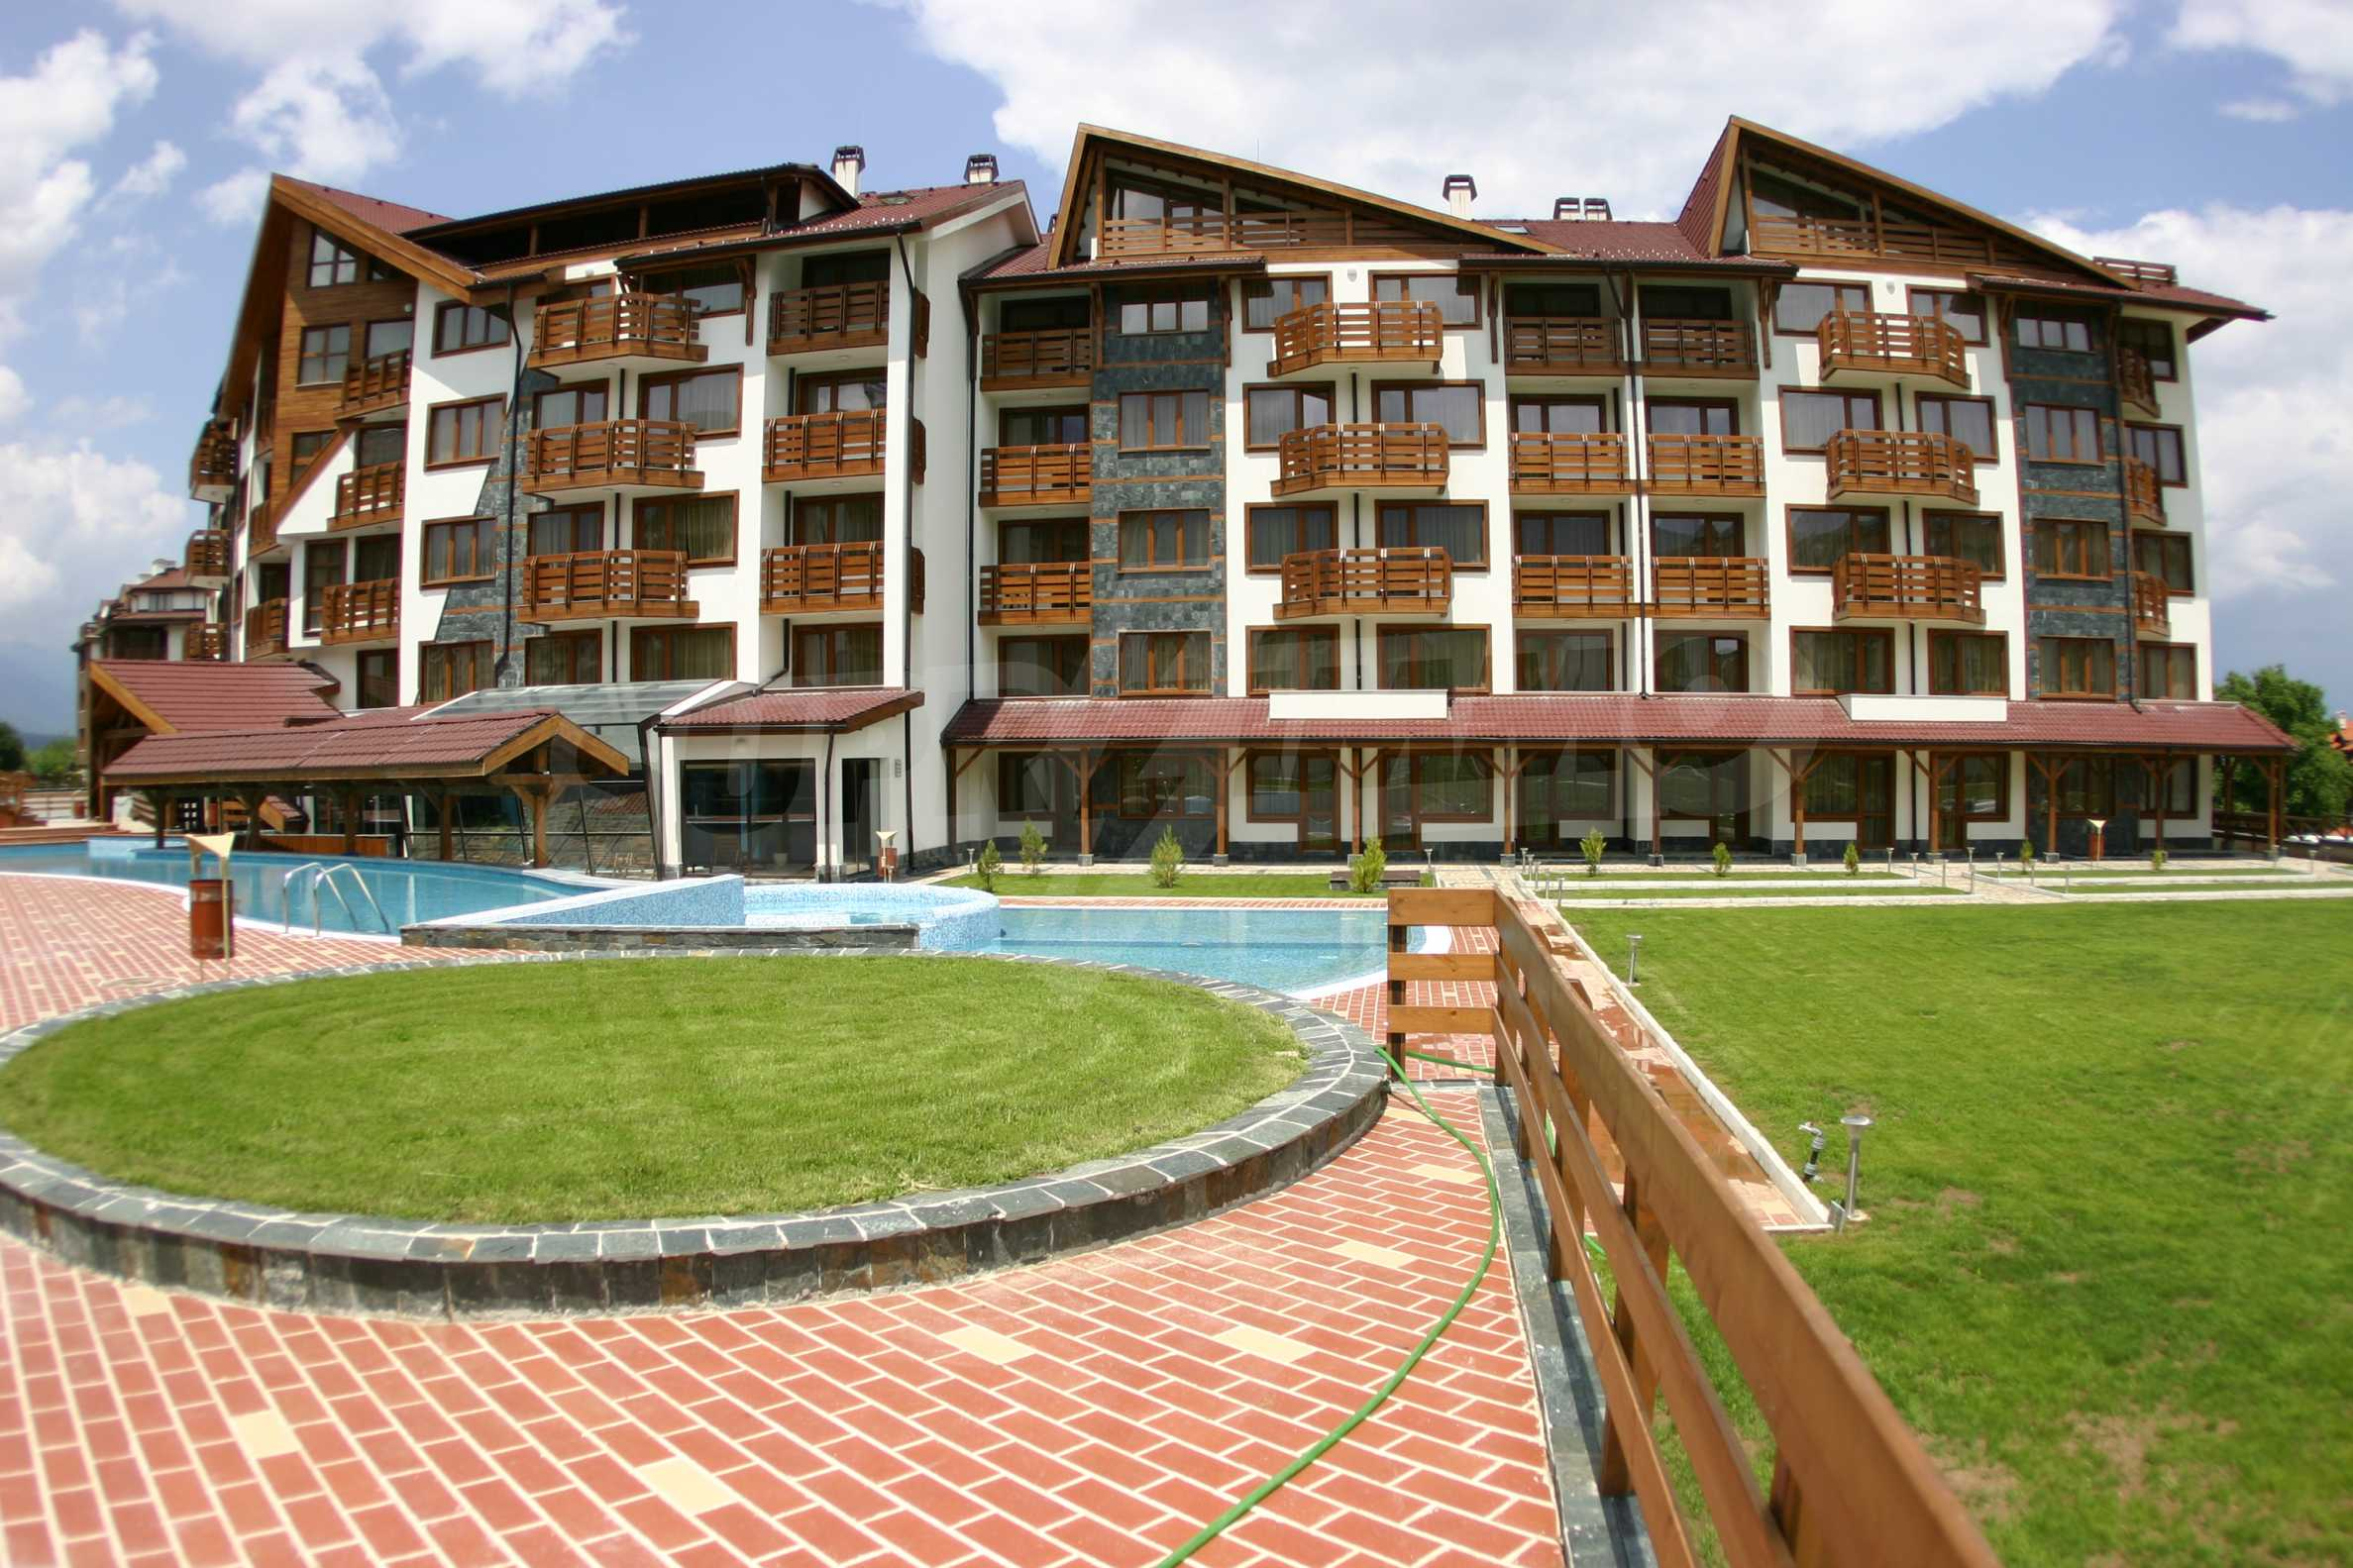 Studio for sale in the best gated complex in Bansko 10